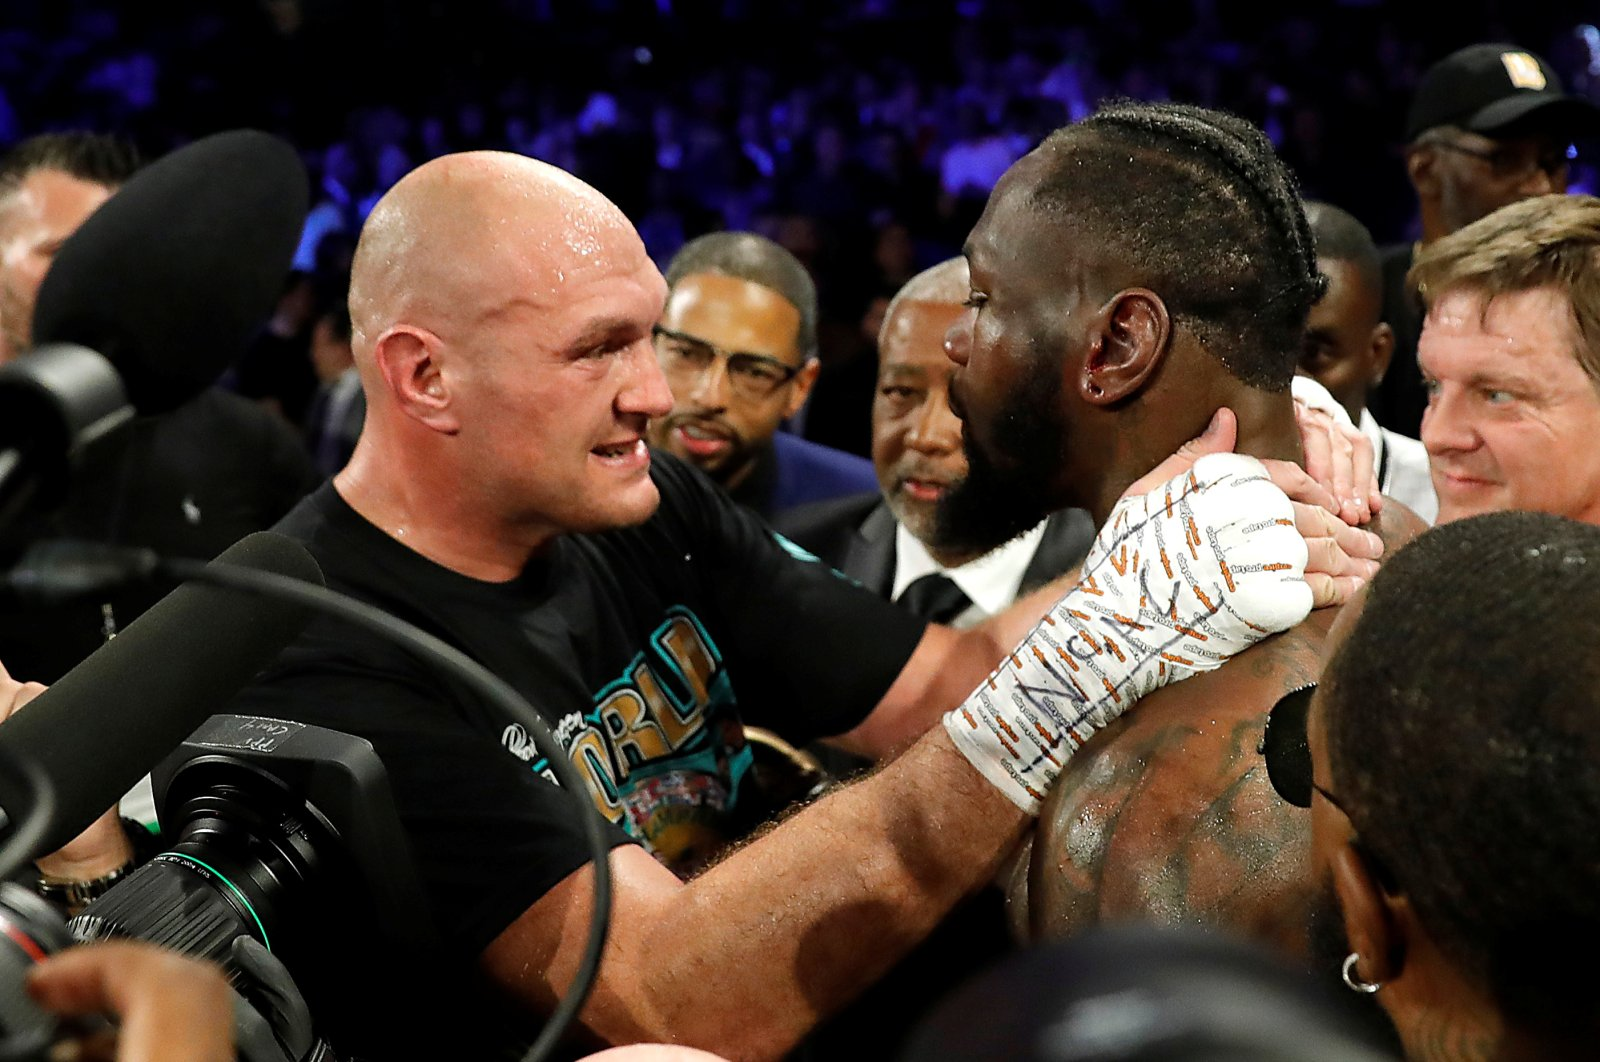 Tyson Fury consoles Deontay Wilder after winning the WBC heavyweight title bout in Las Vegas, Feb. 22, 2020. (Reuters Photo)